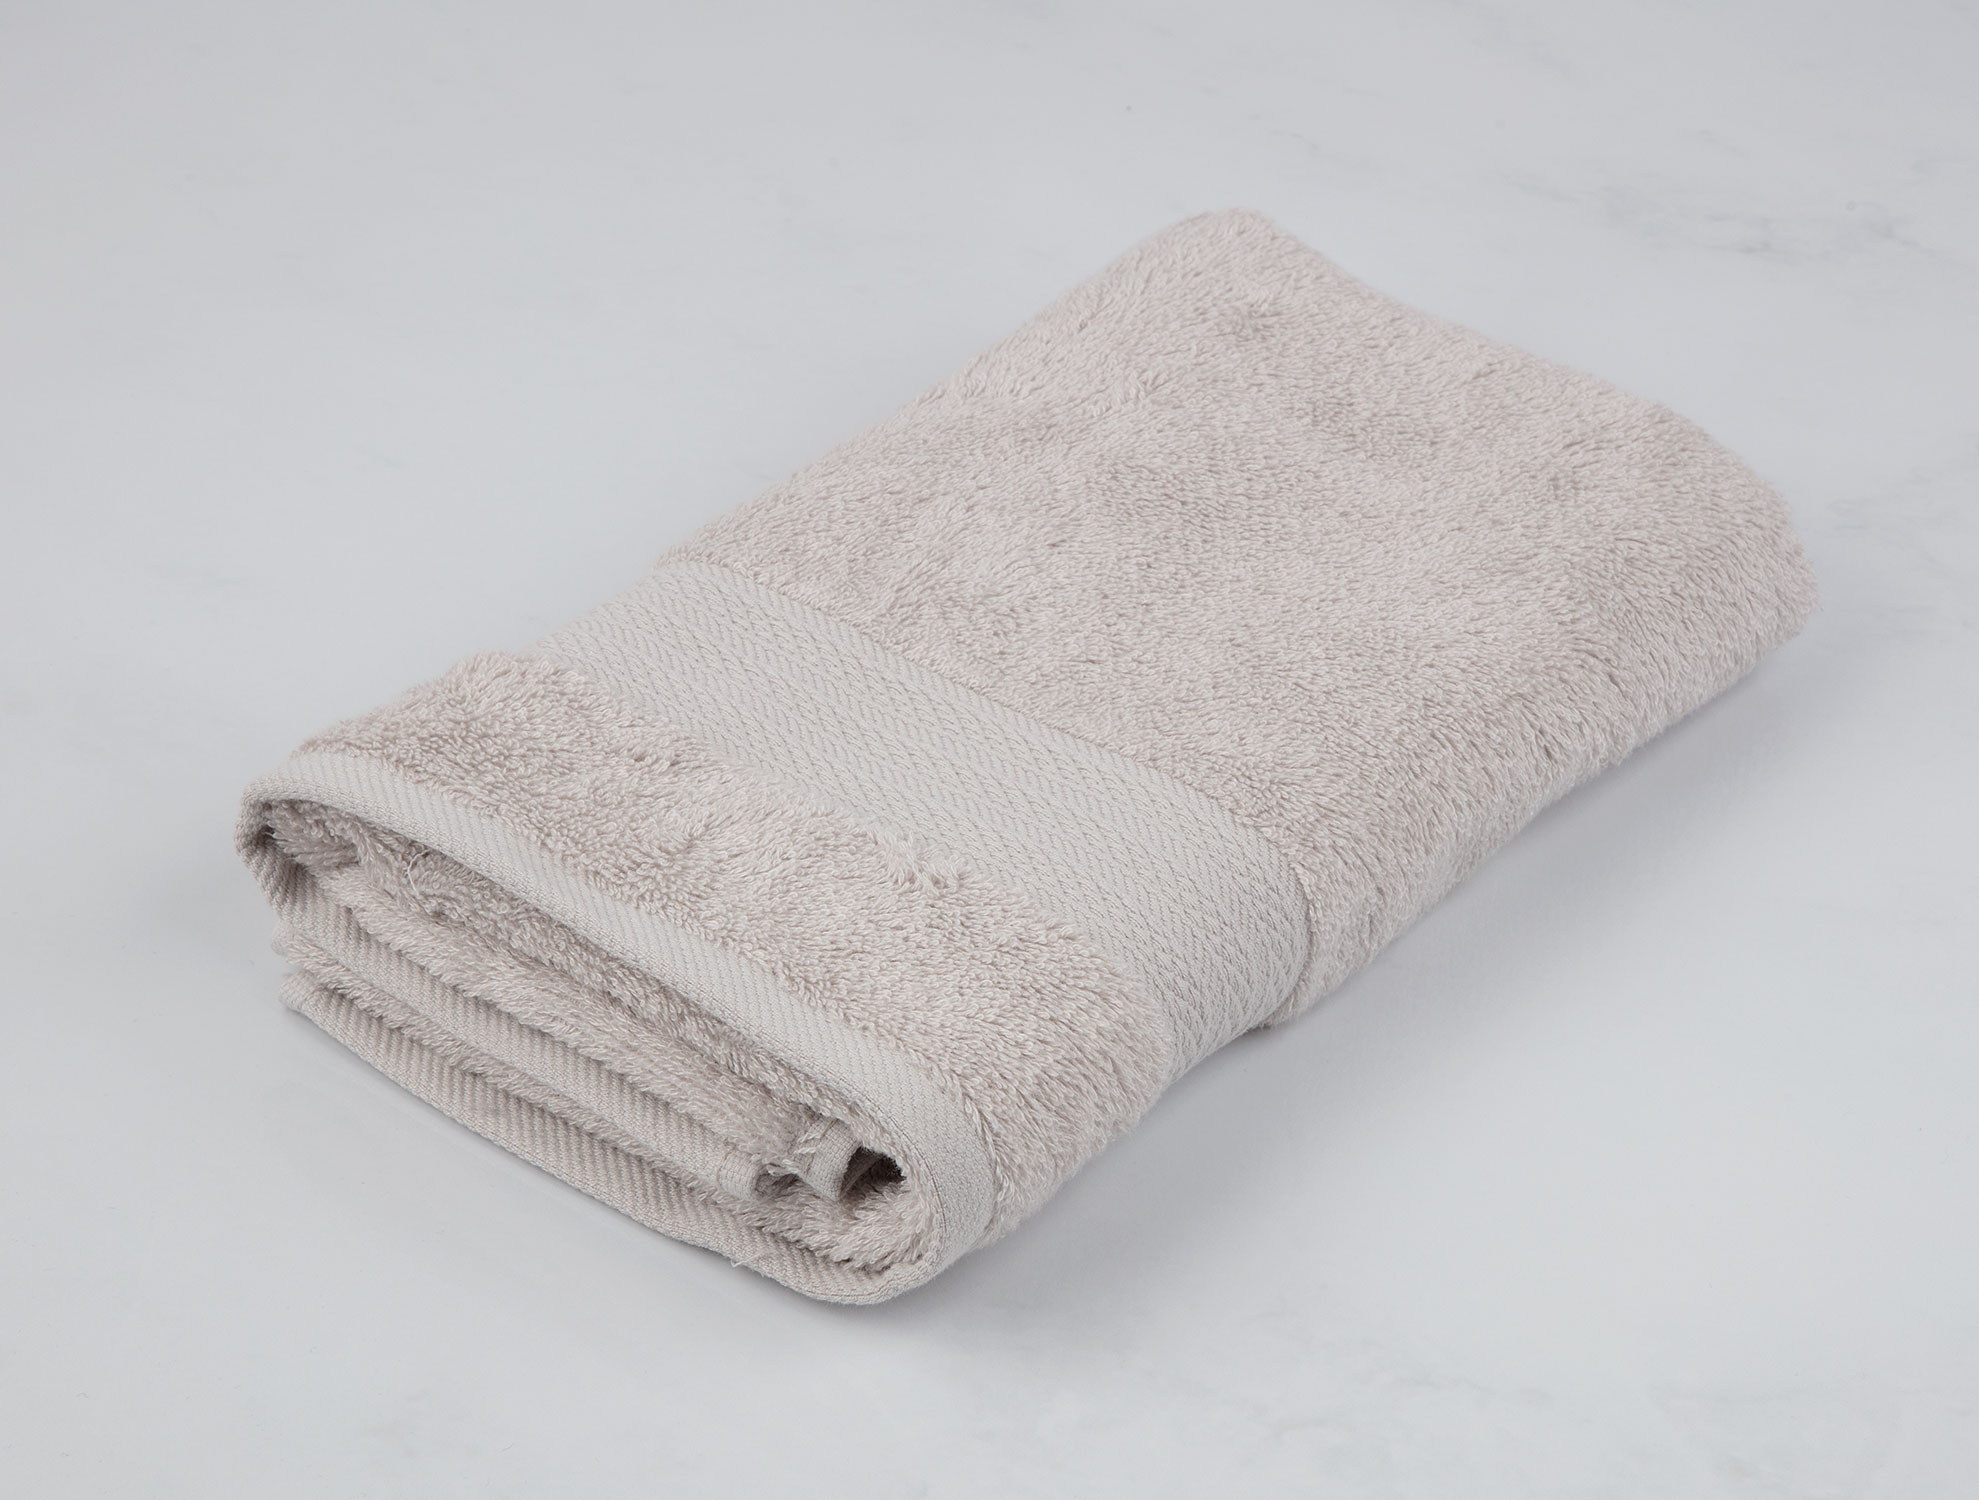 Viscose From Bamboo Towel 50x80 CM